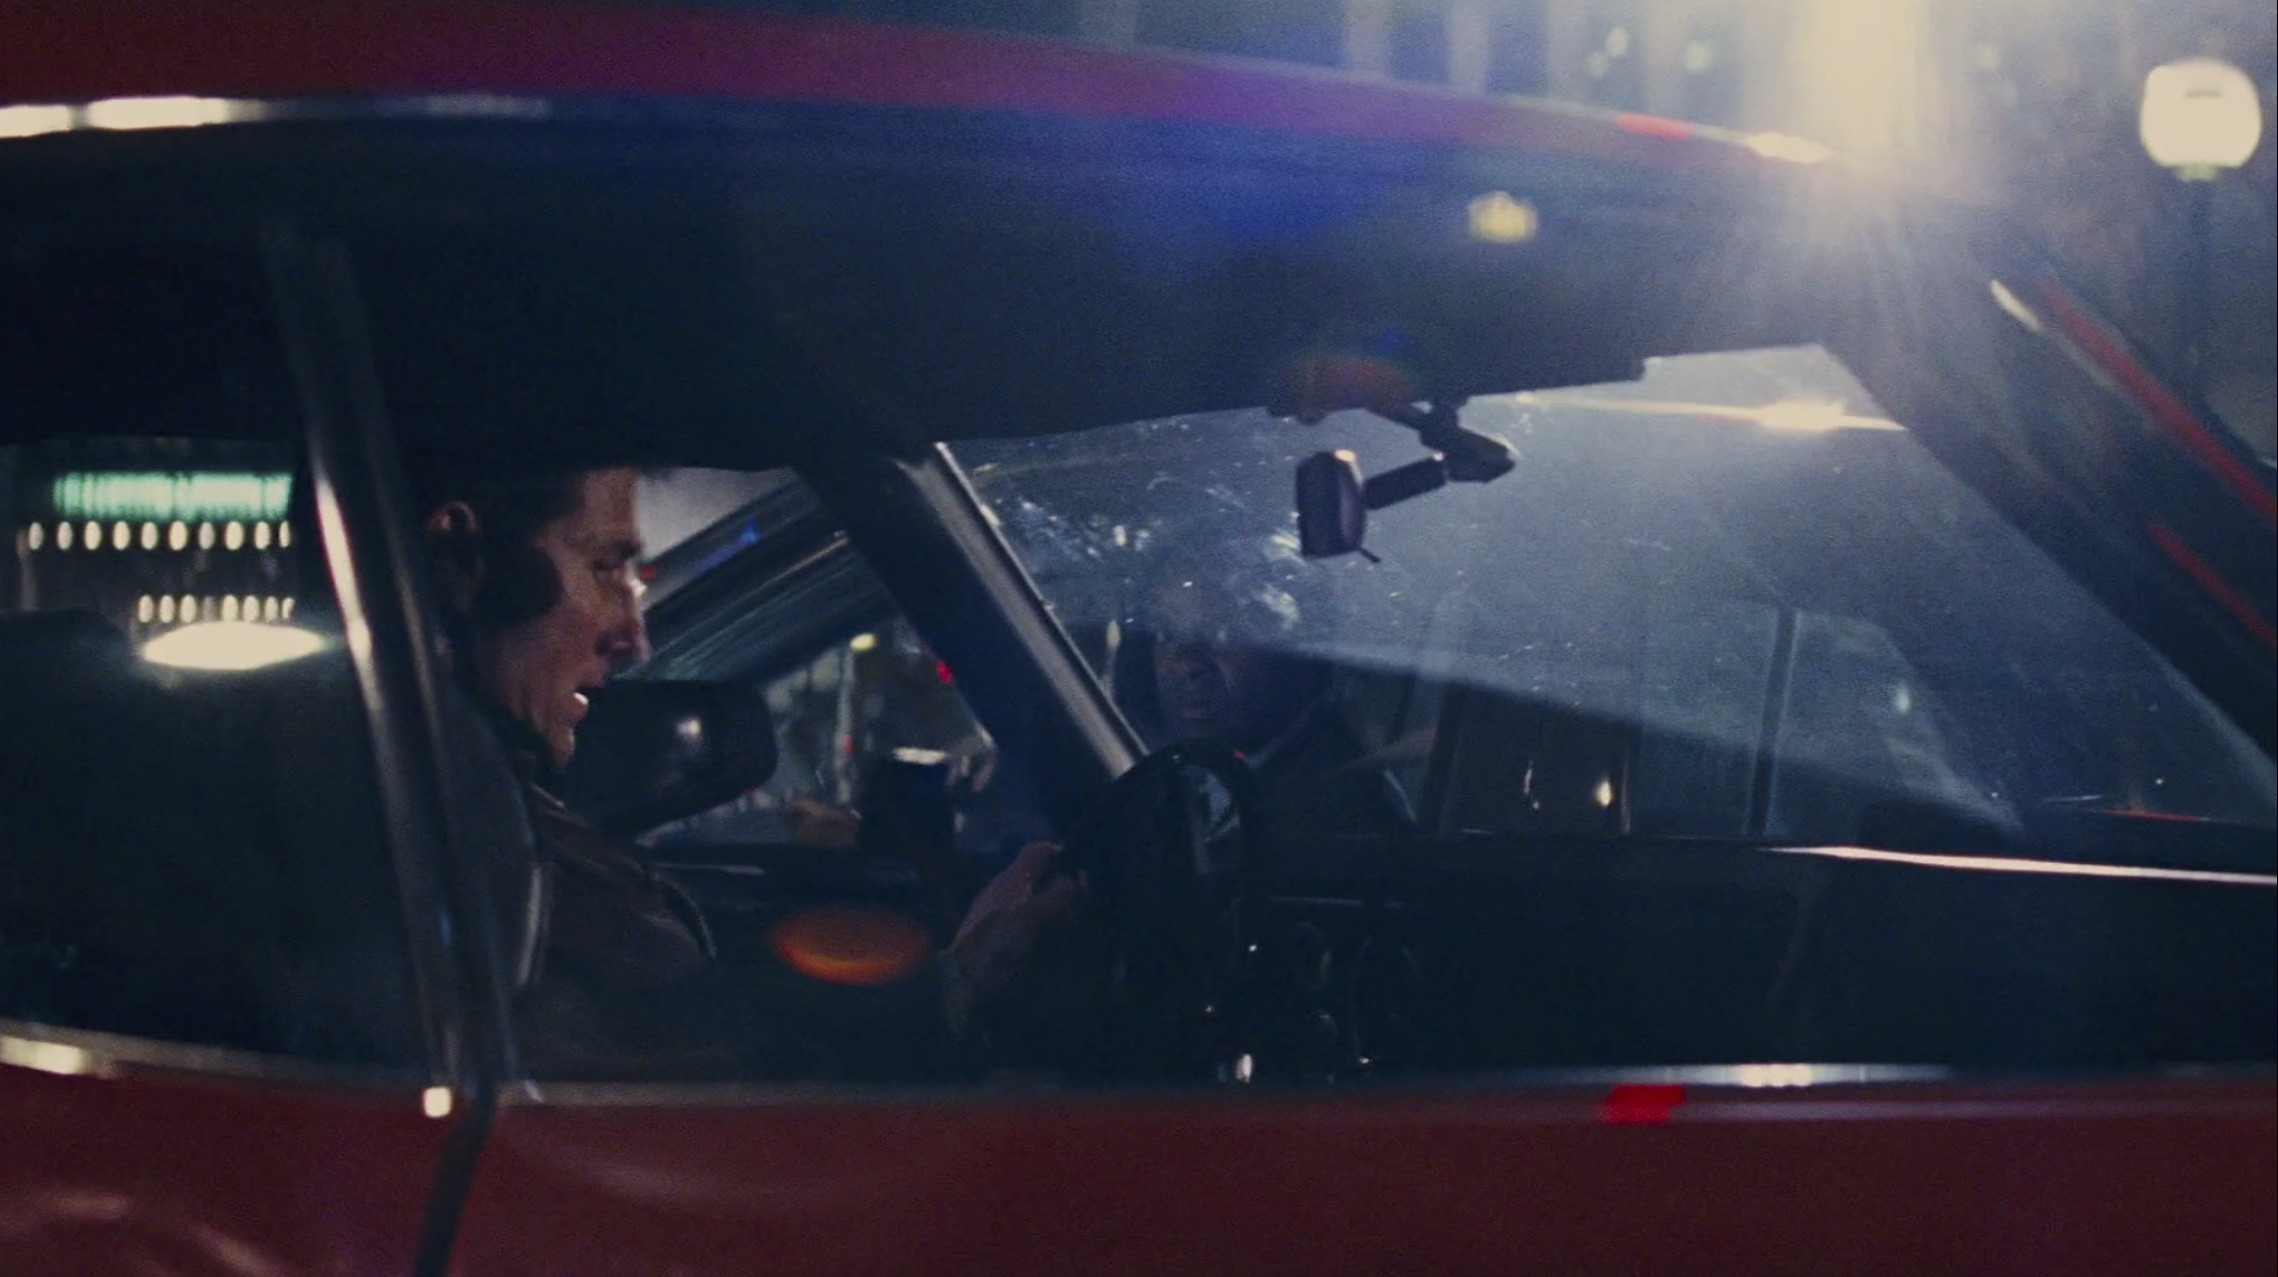 Jack reacher chevelle in car with tom cruise